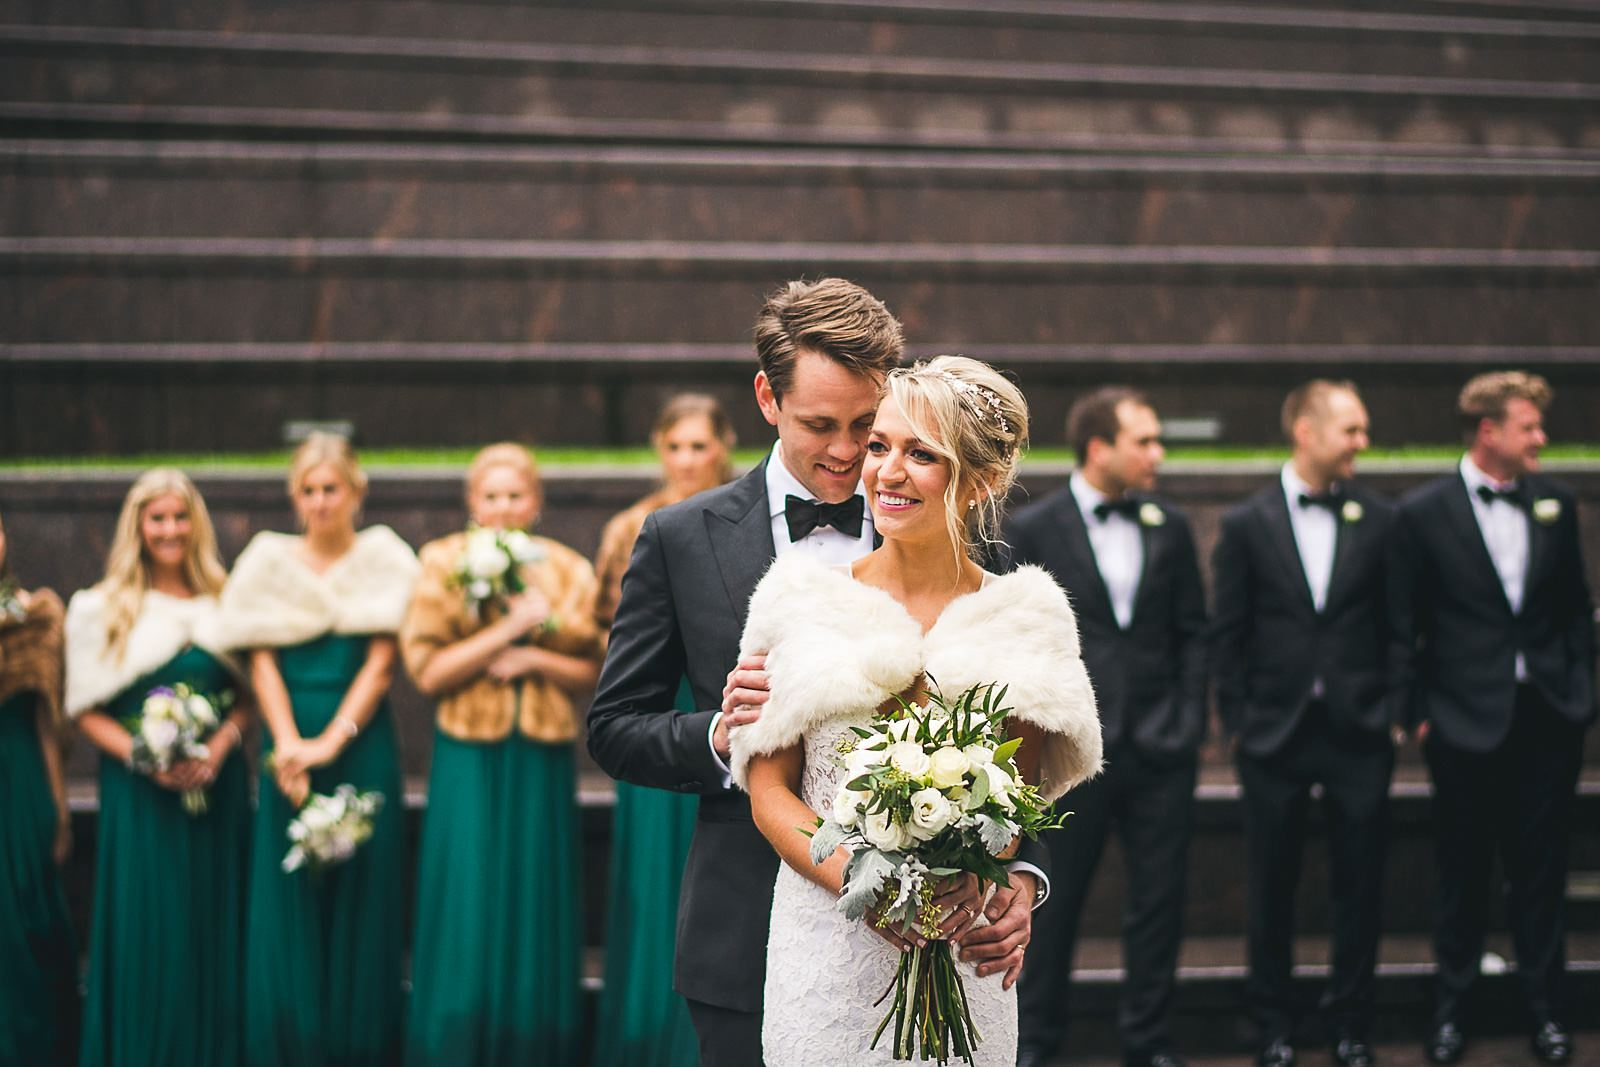 37 chicago wedding photos - Ivy Room Wedding // Audrey + Tyler